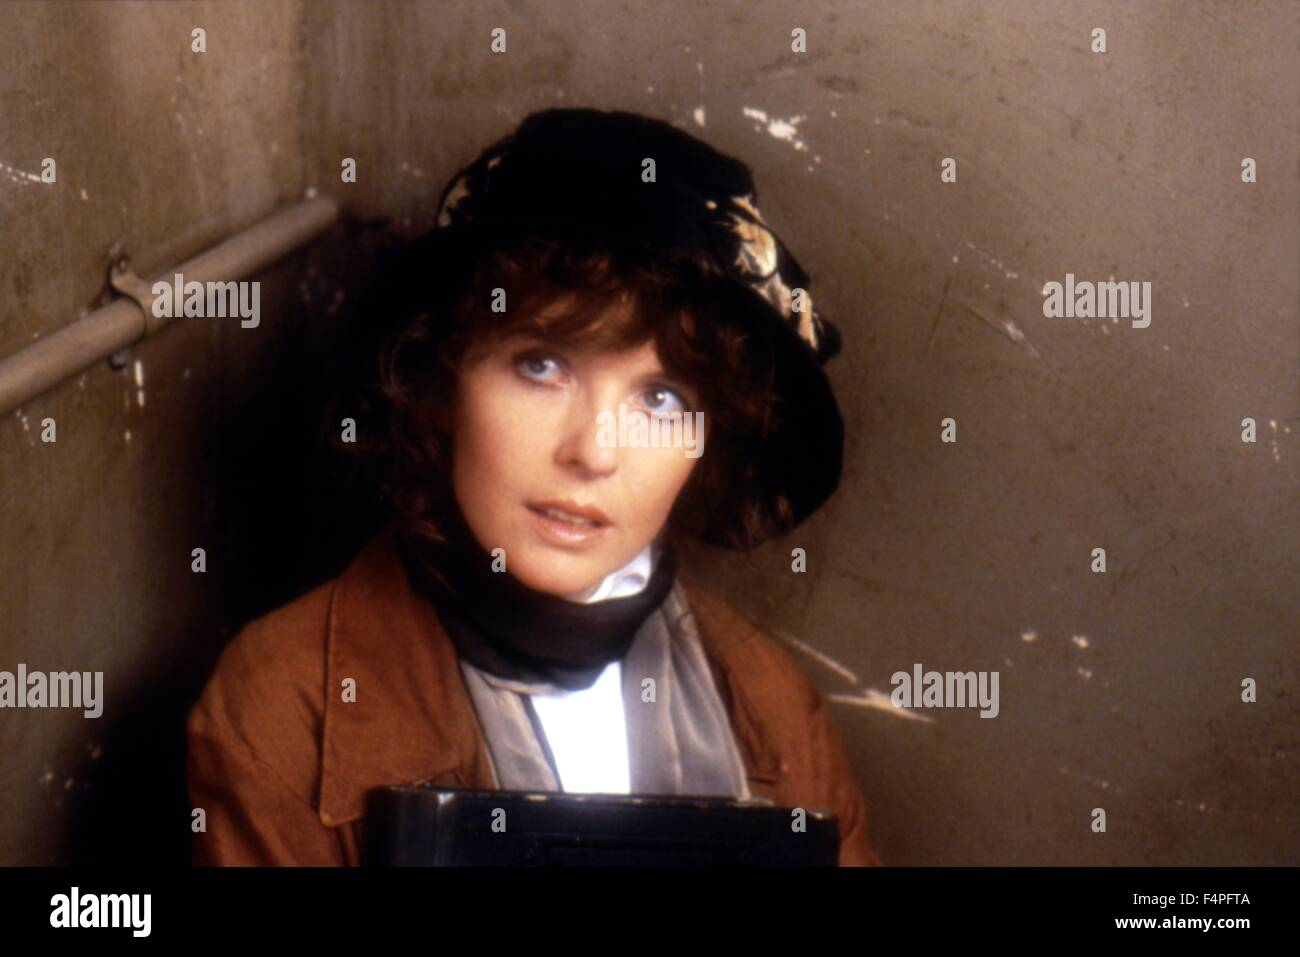 Diane Keaton / Reds / 1981 directed by Warren Beatty - Stock Image